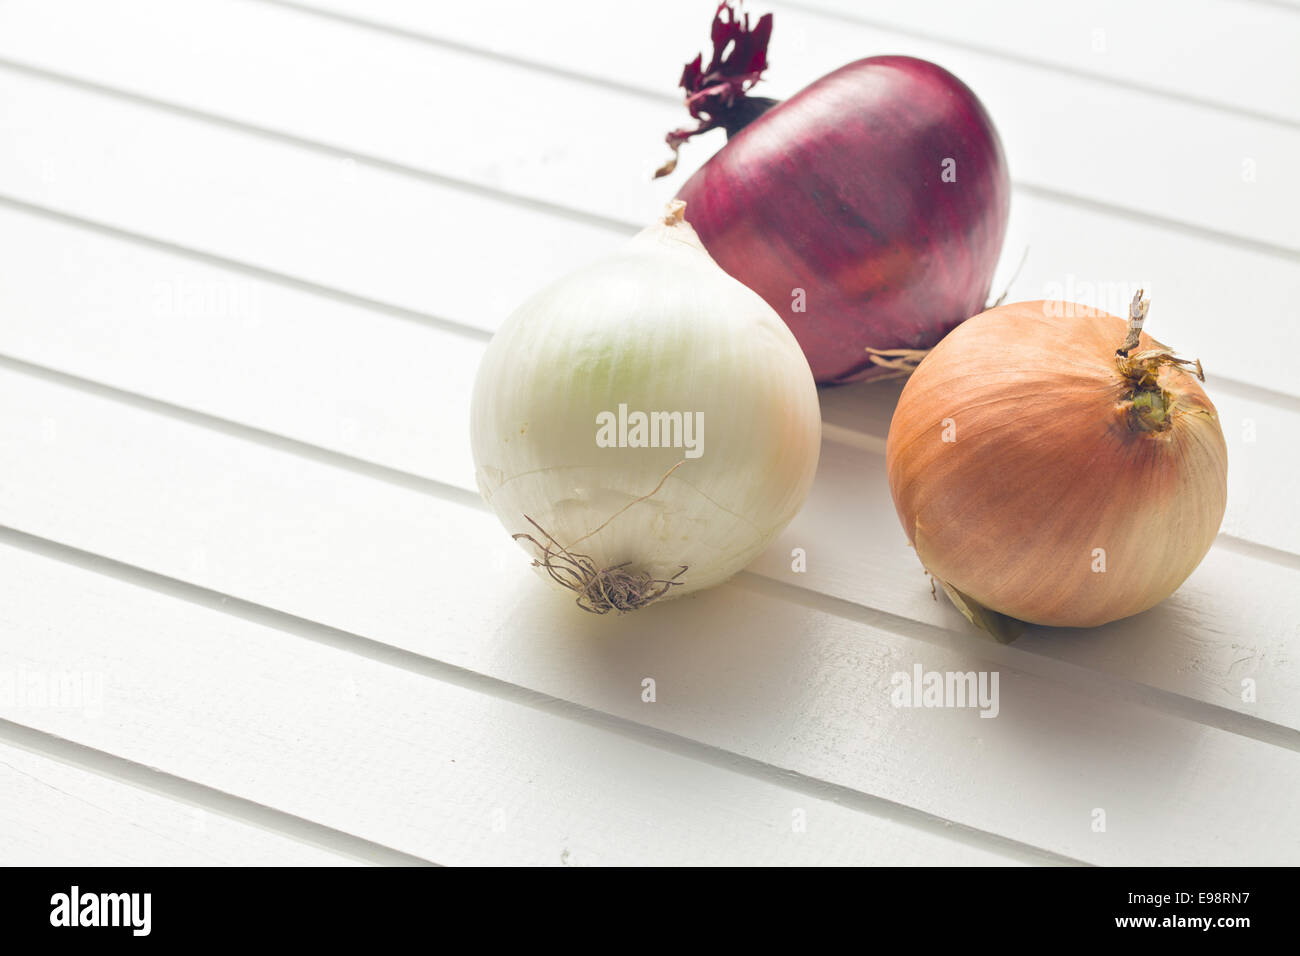 various onions on kitchen table - Stock Image